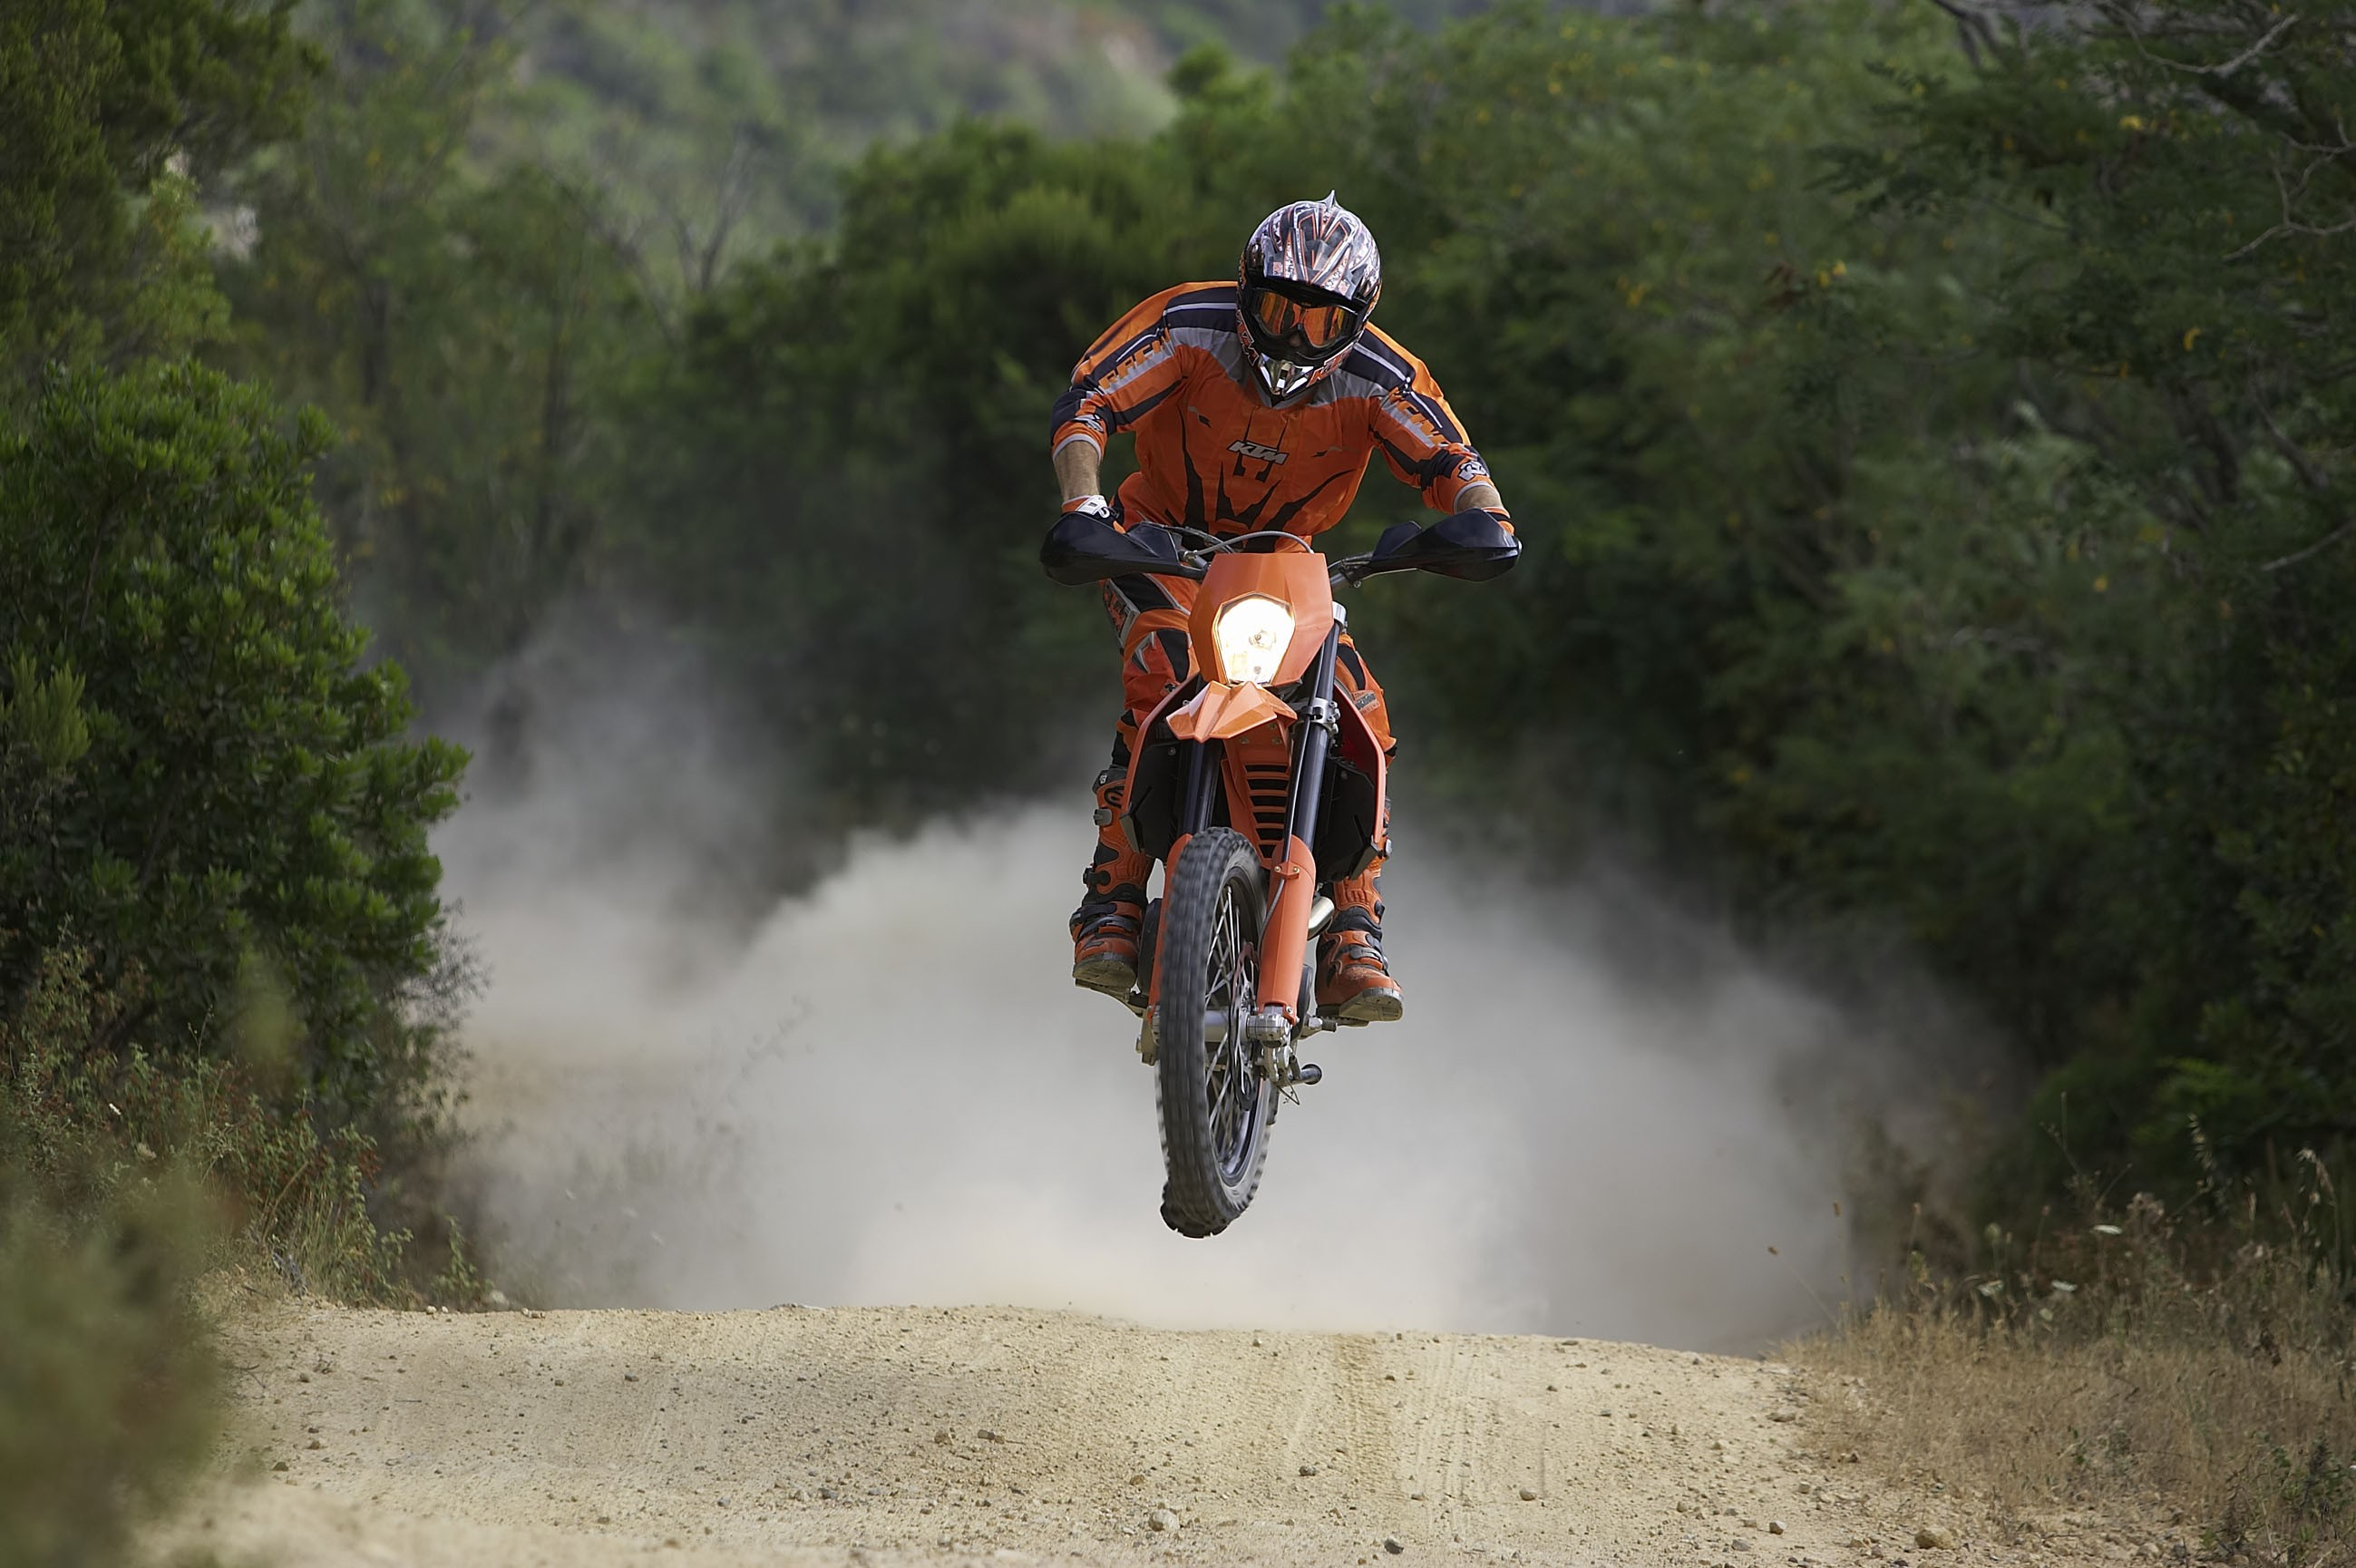 Ktm enduro photo - 2